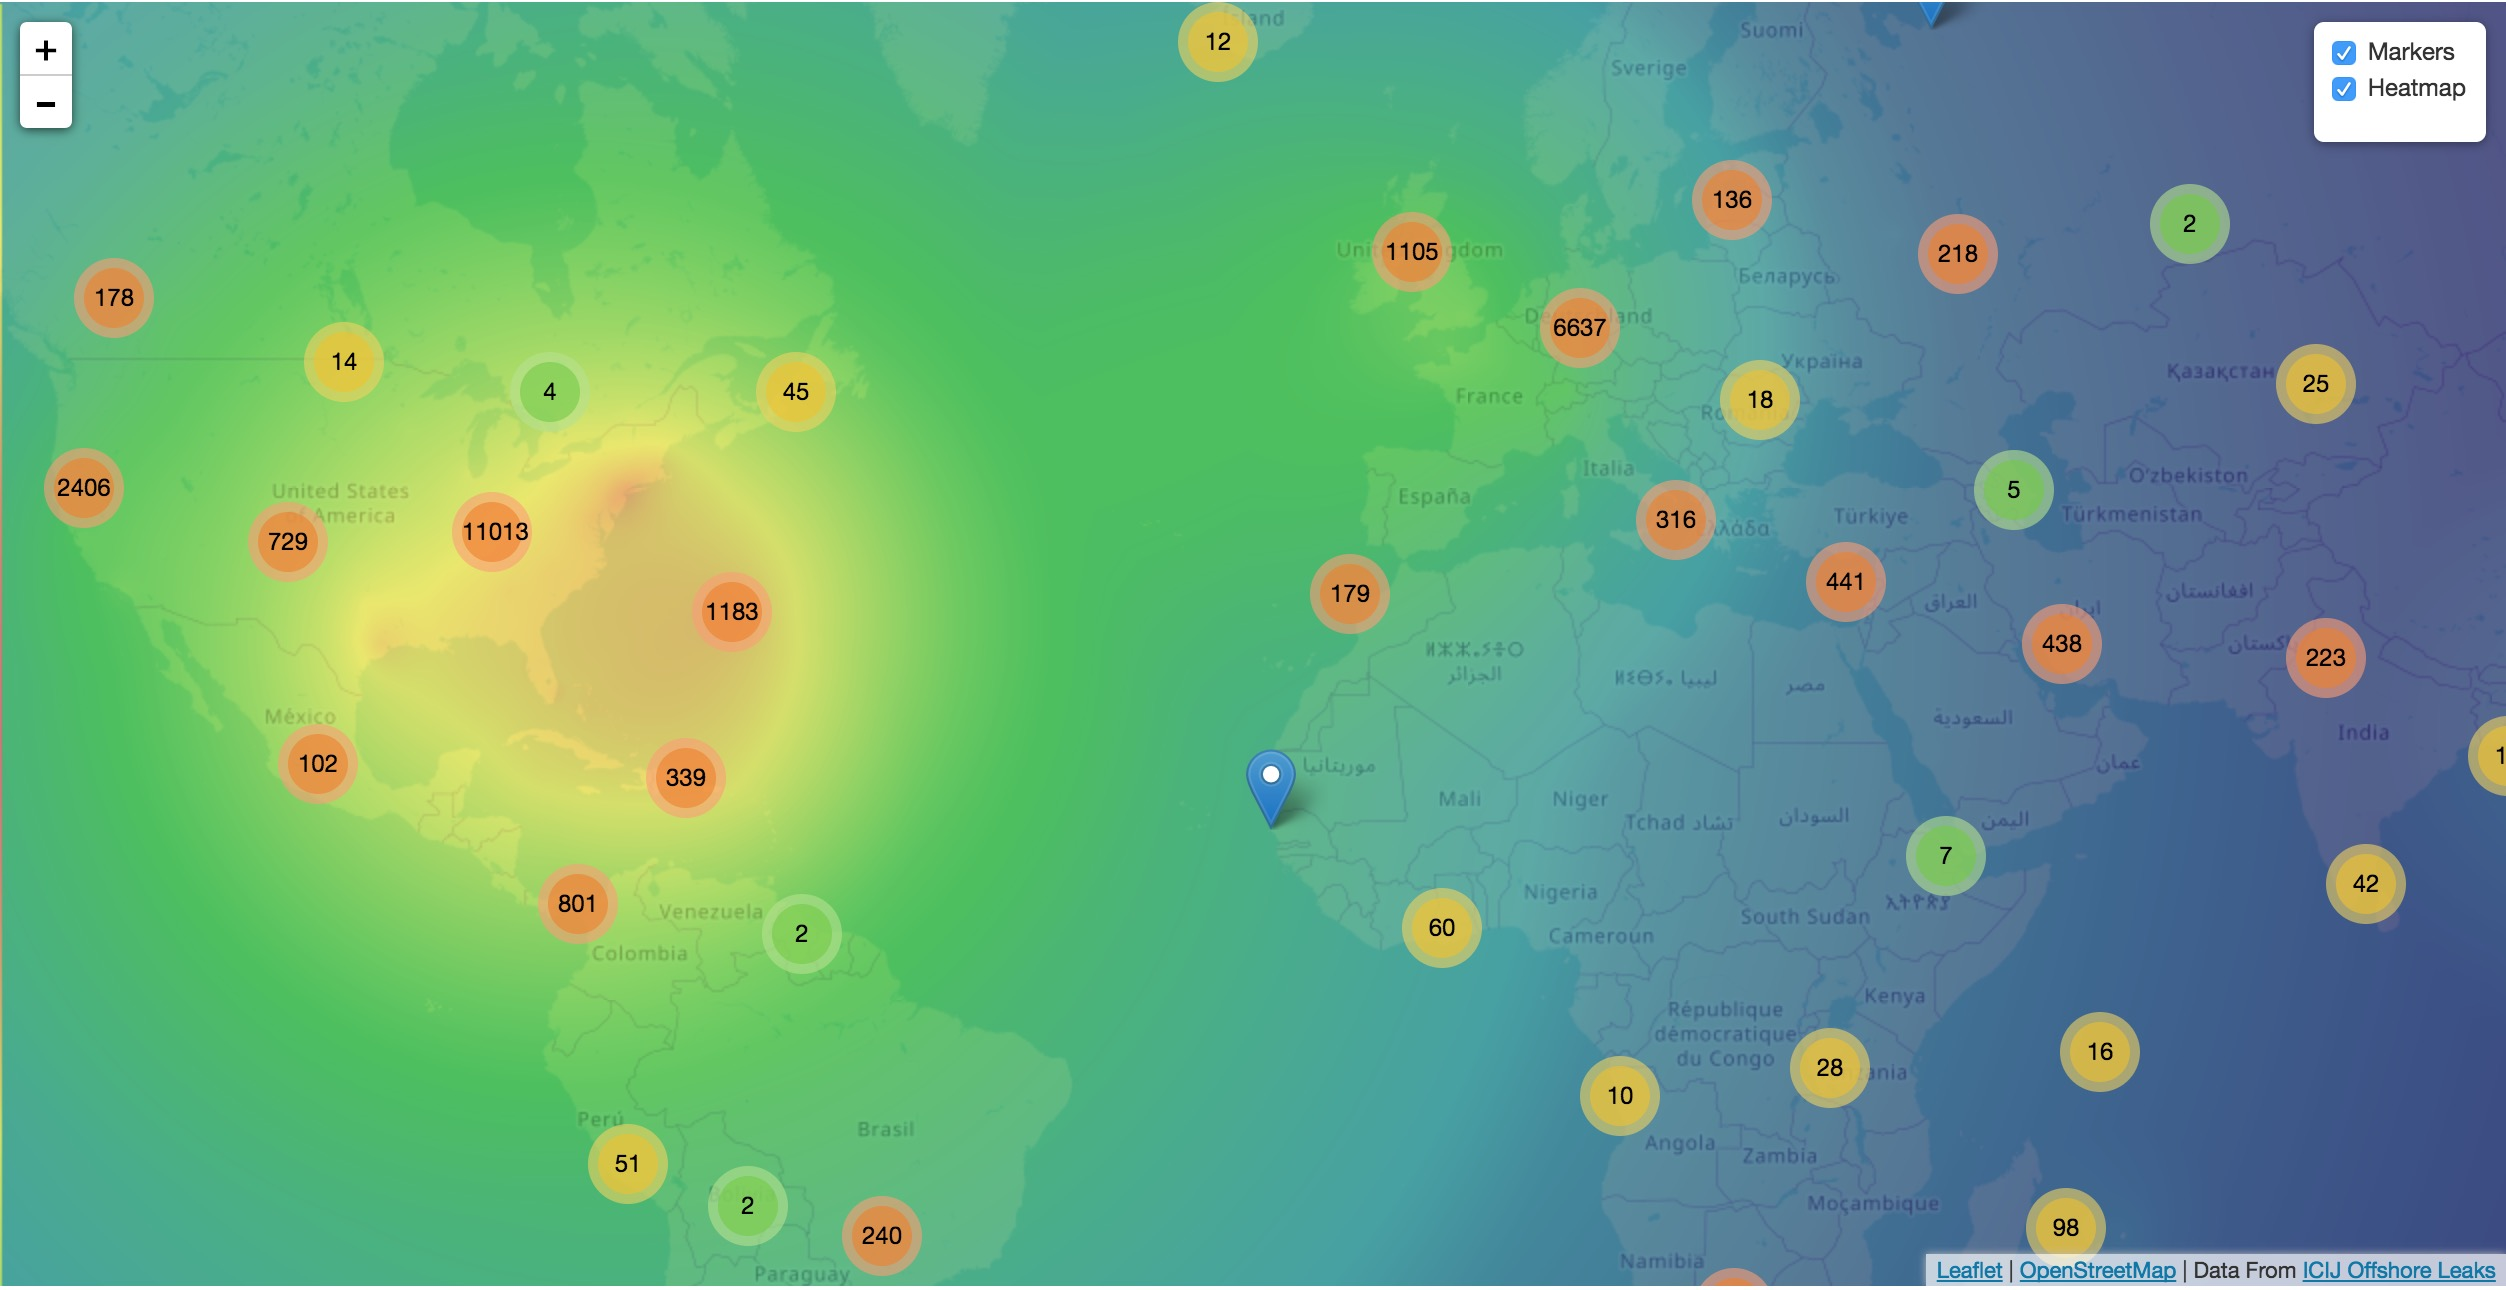 heatmap visualization